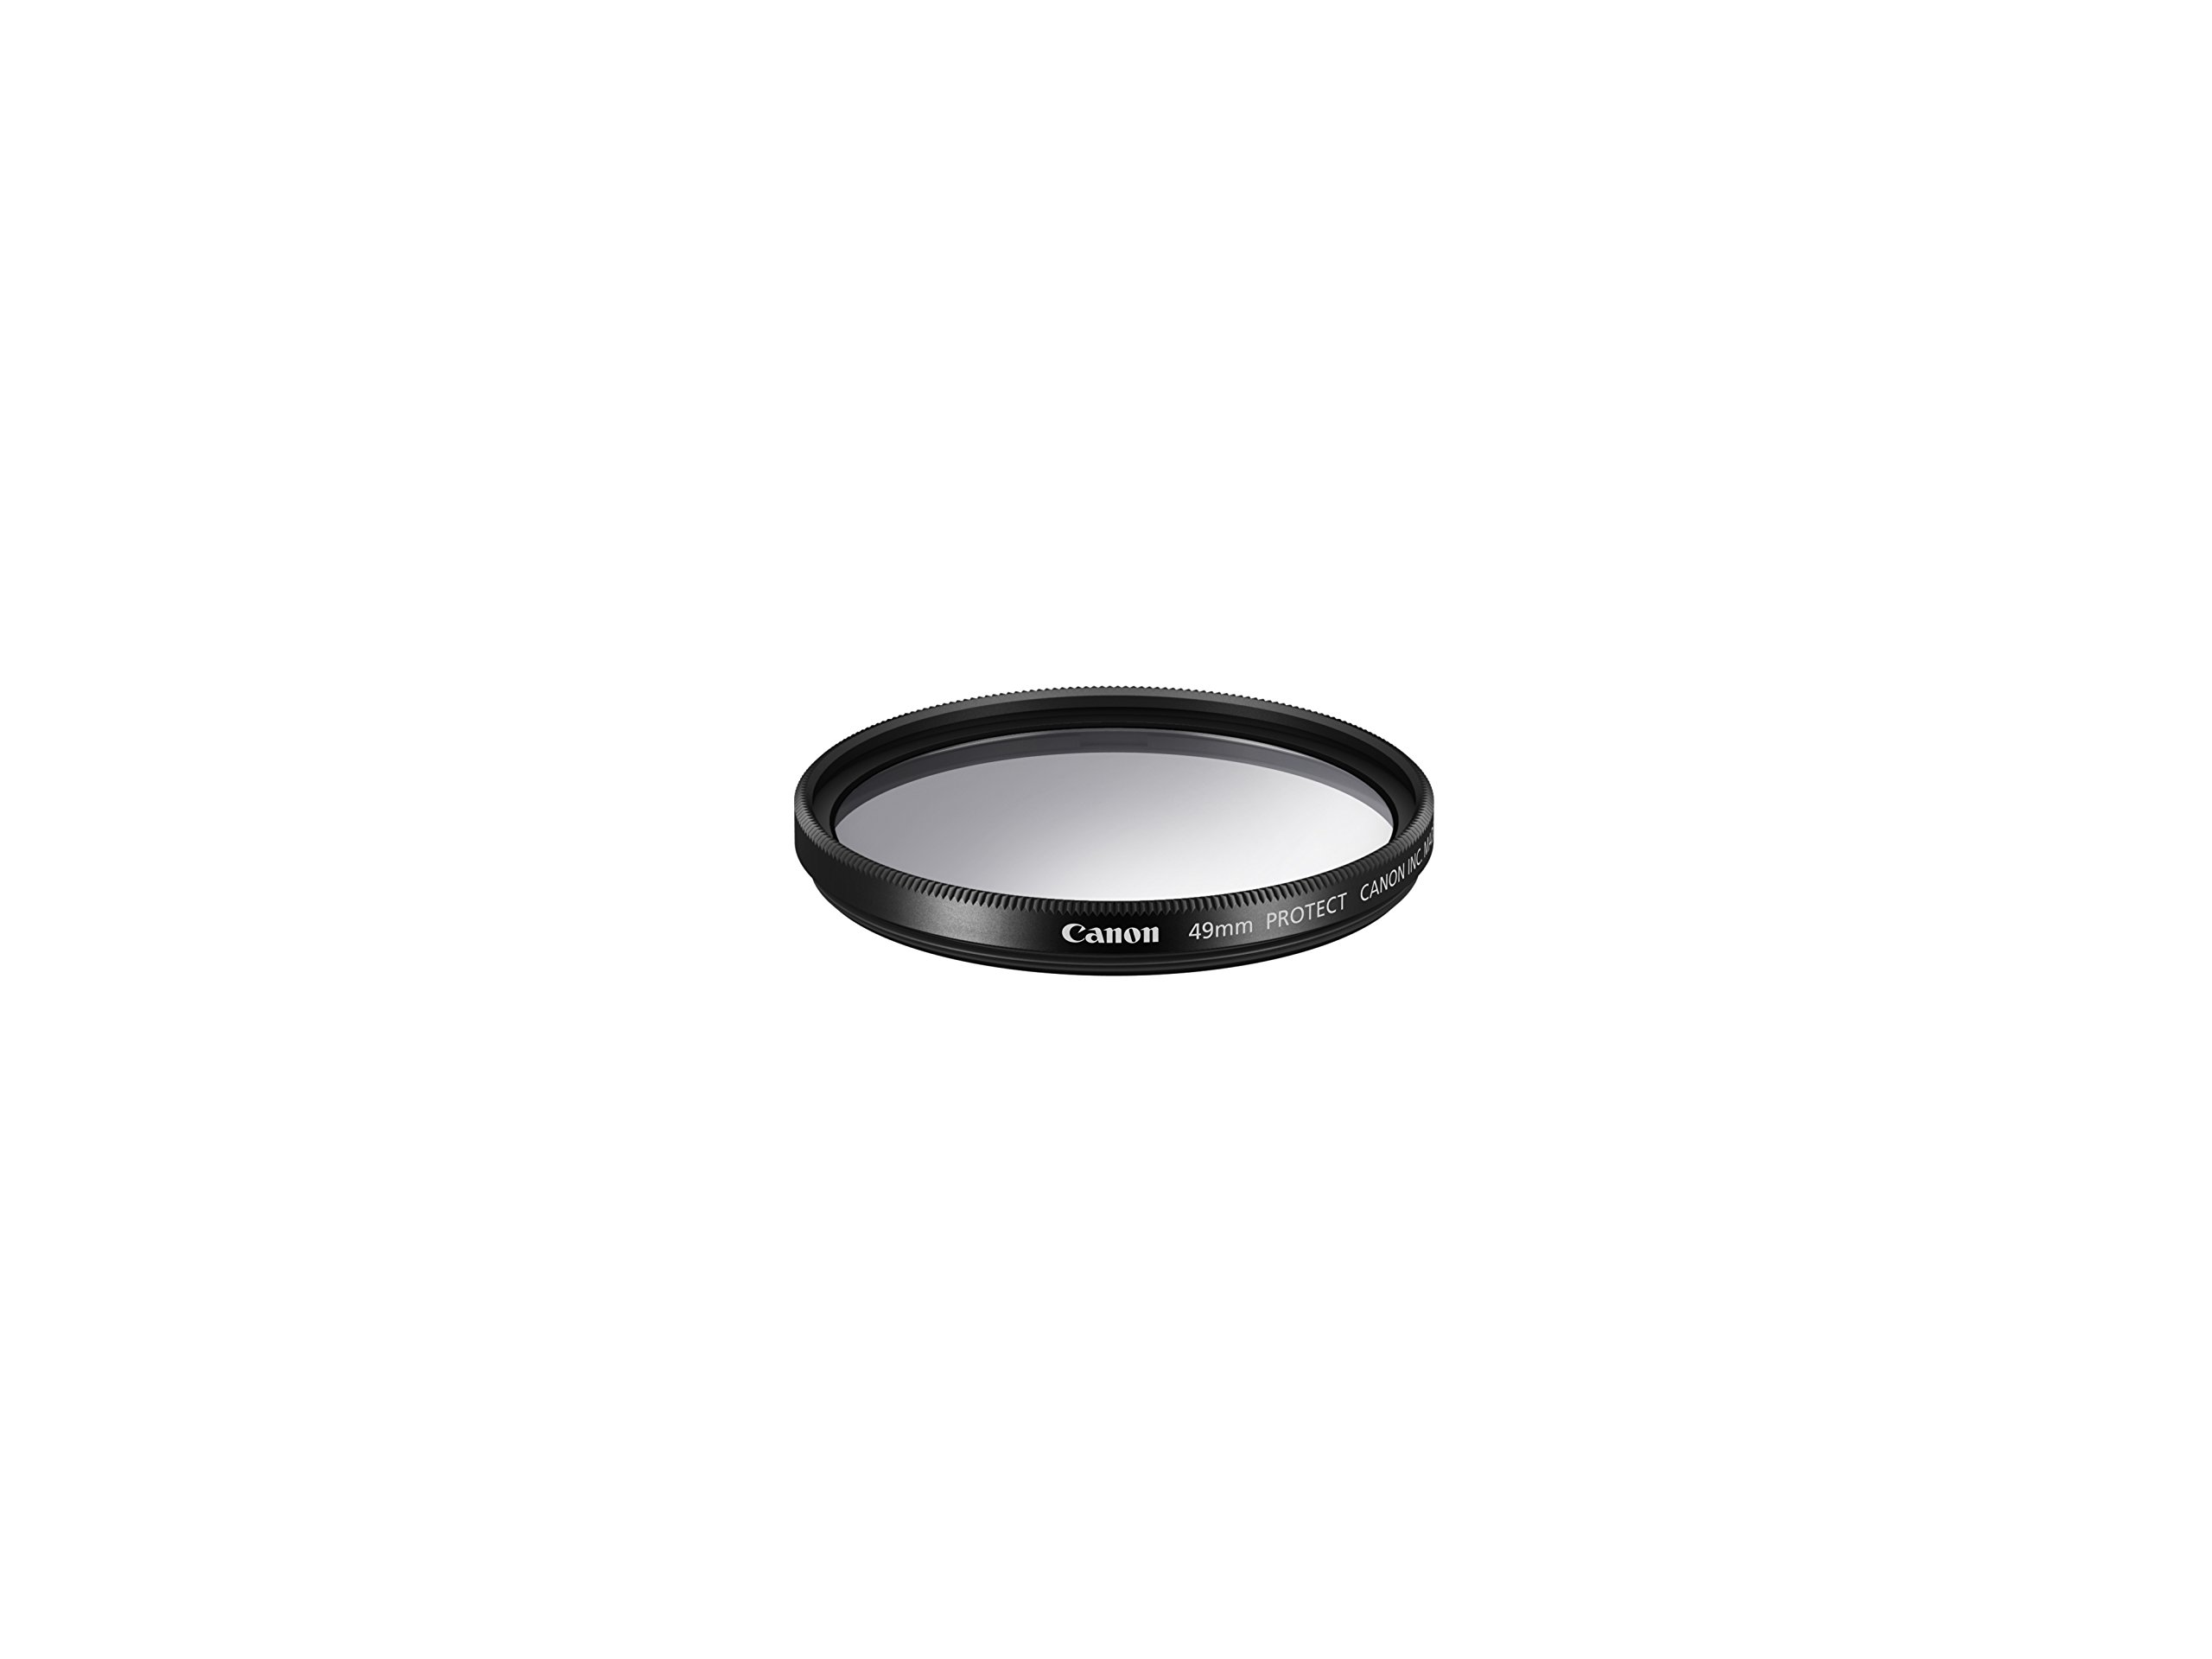 Canon 49mm Protect Filter by Canon